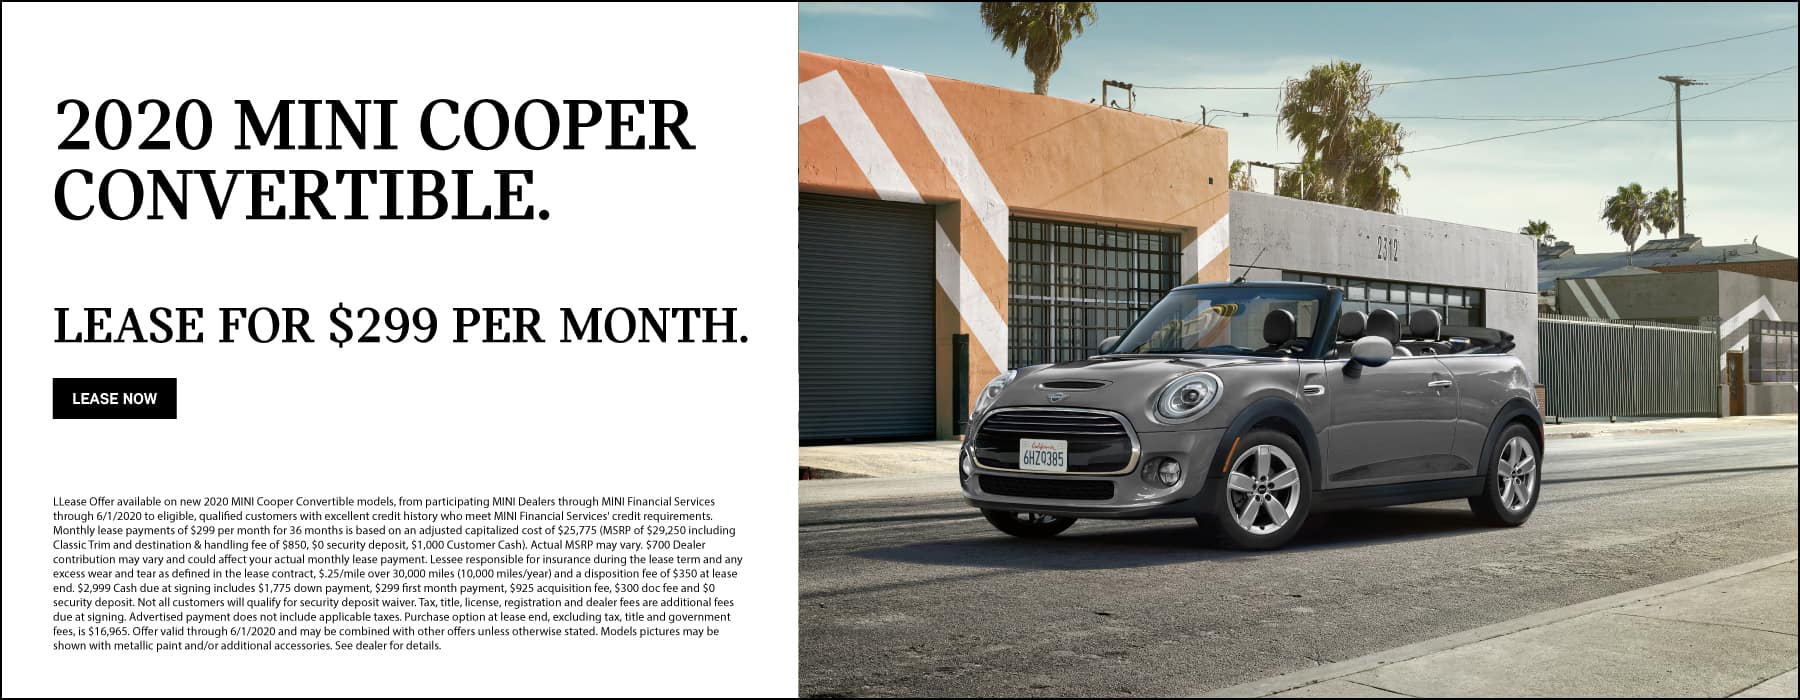 2020 MINI Cooper Convertible Lease: $299/MO for 36 months